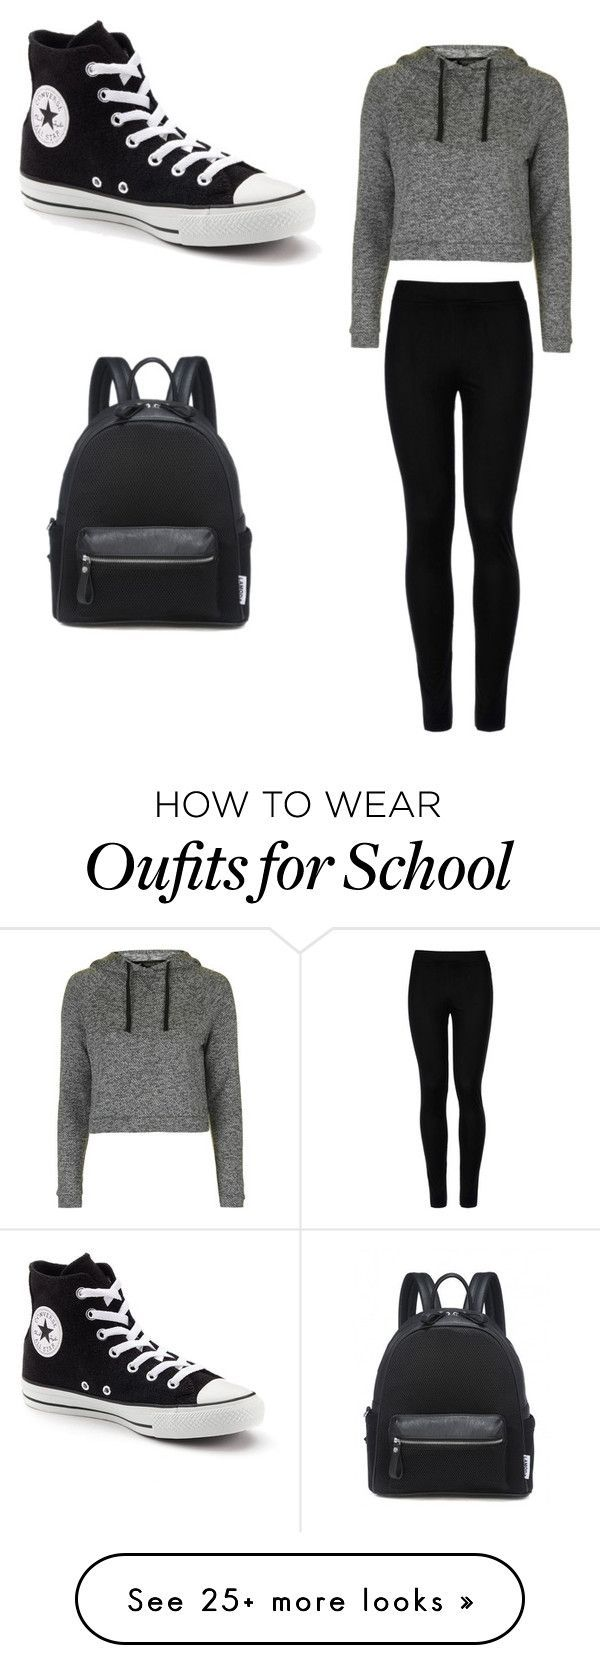 cool School Sets by http://www.redfashiontrends.us/teen-fashion/school-sets/